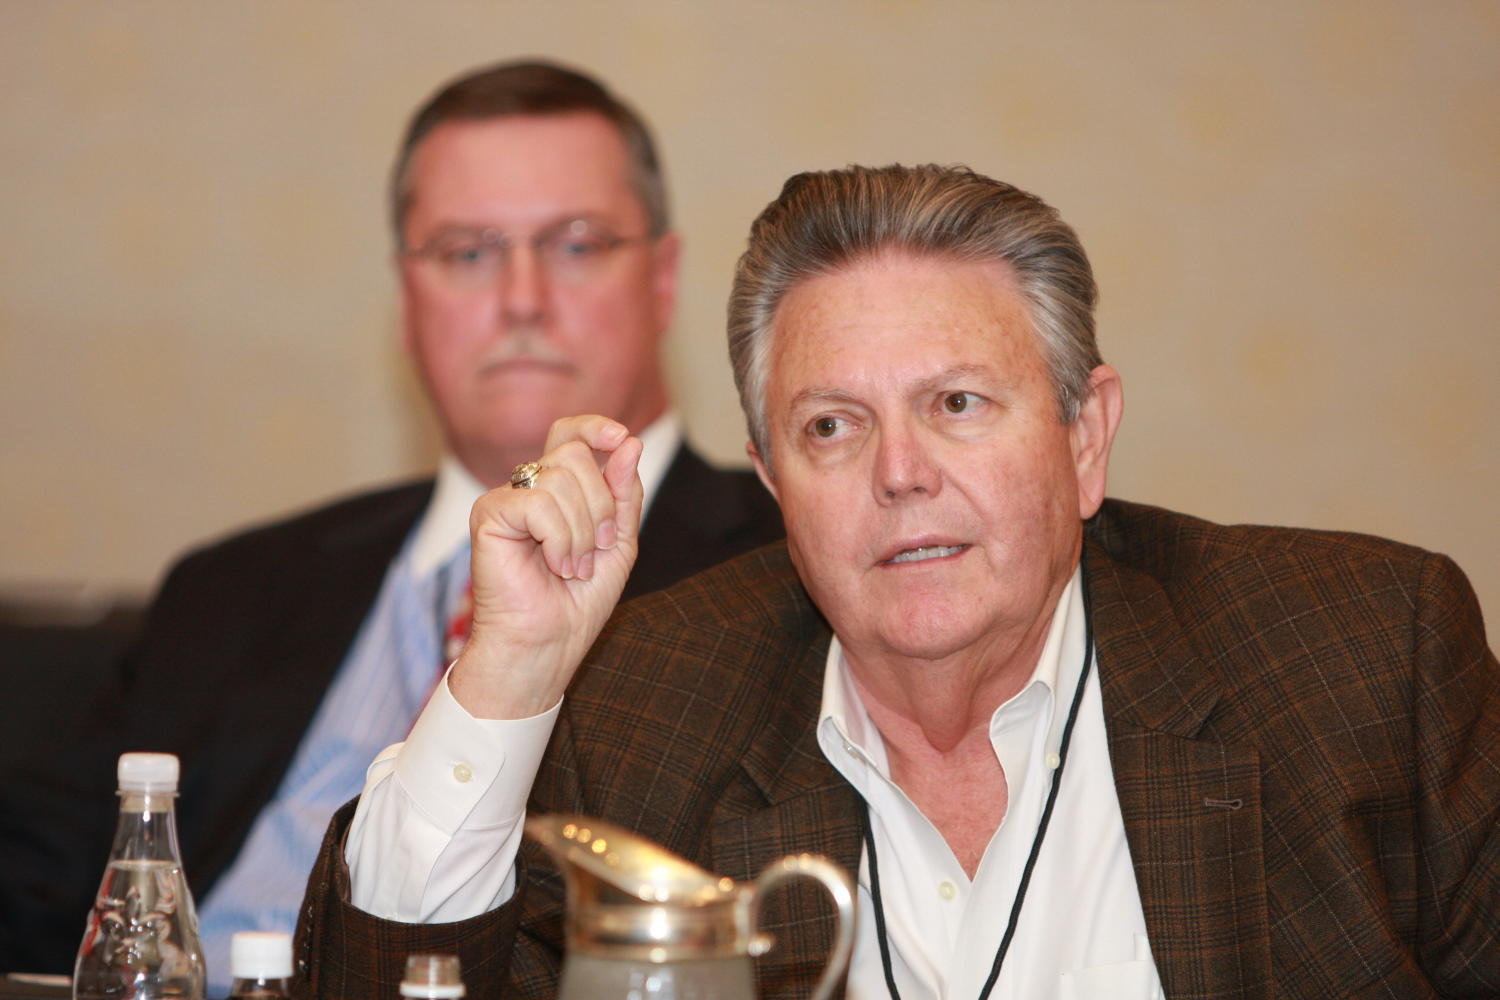 [Wesley R. Turner at TDNA conference], Photograph of Wesley R. Turner seen attending the 2010 Texas Daily Newspaper Association annual meeting held in Houston, Texas.,